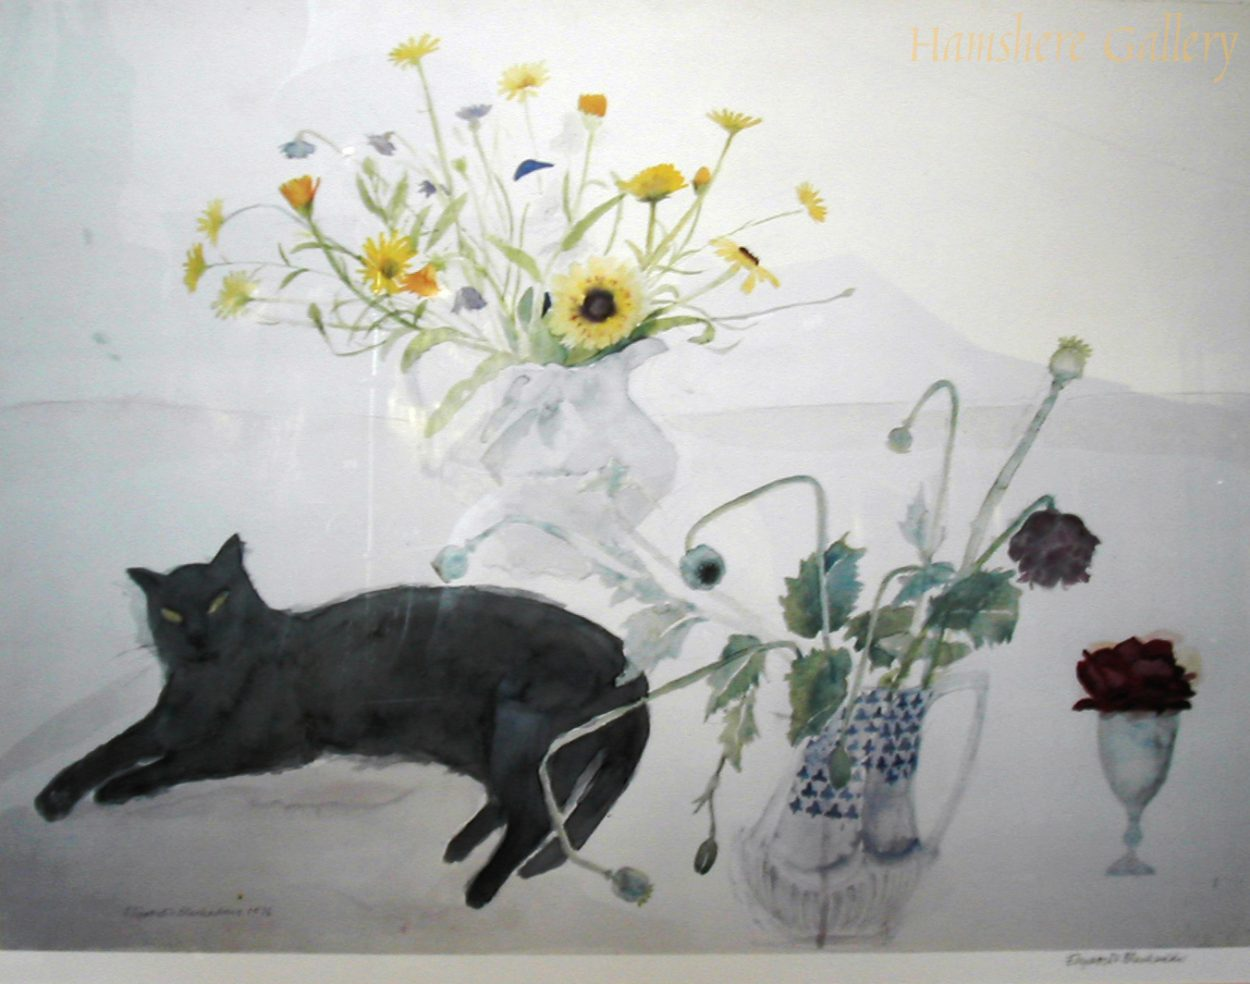 Cat by Vase of Flowers, 1976 Elizabeth Blackadder